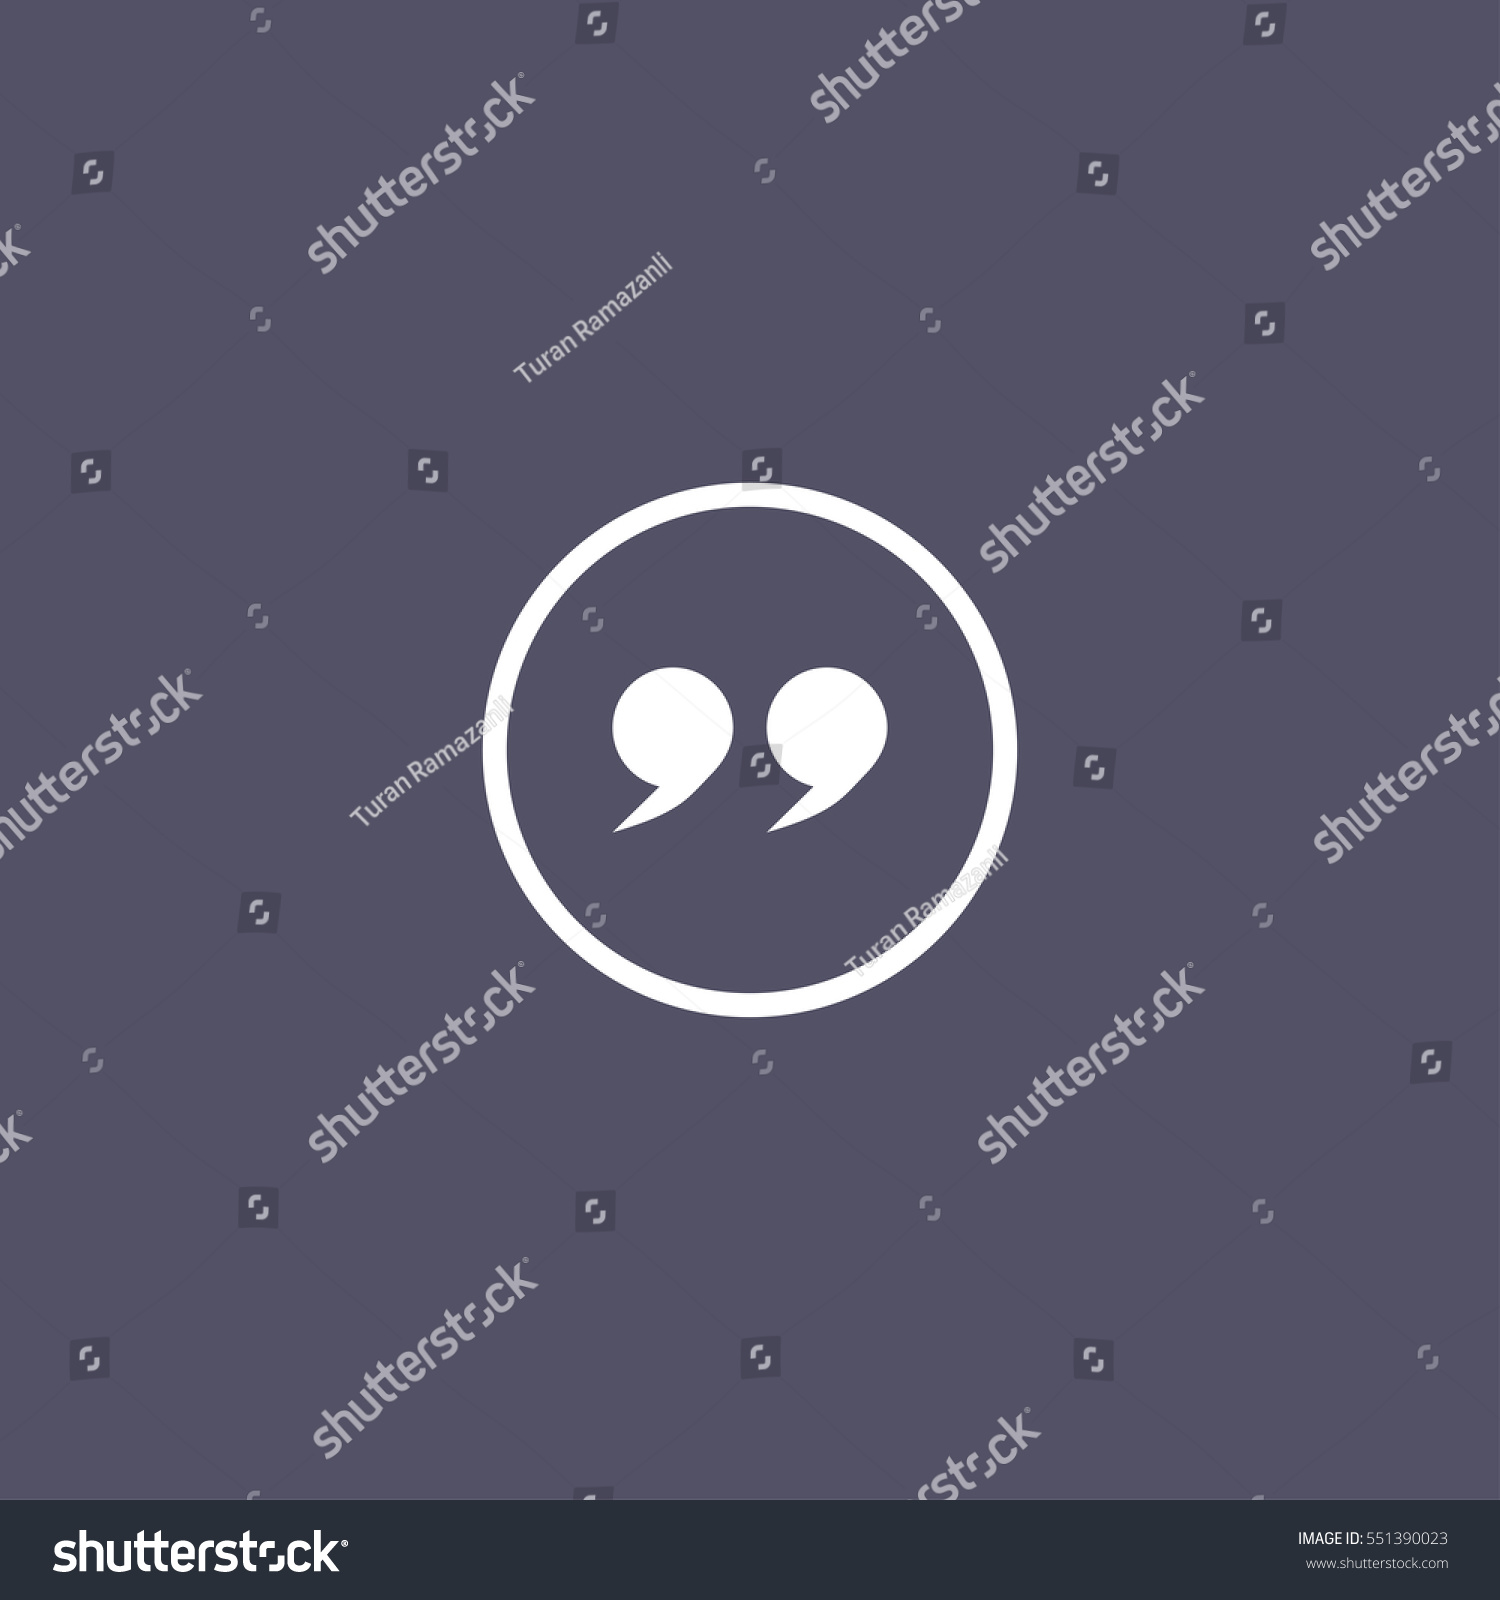 Simple Quotes Simple Quotes Icon Stock Vector 551390023  Shutterstock